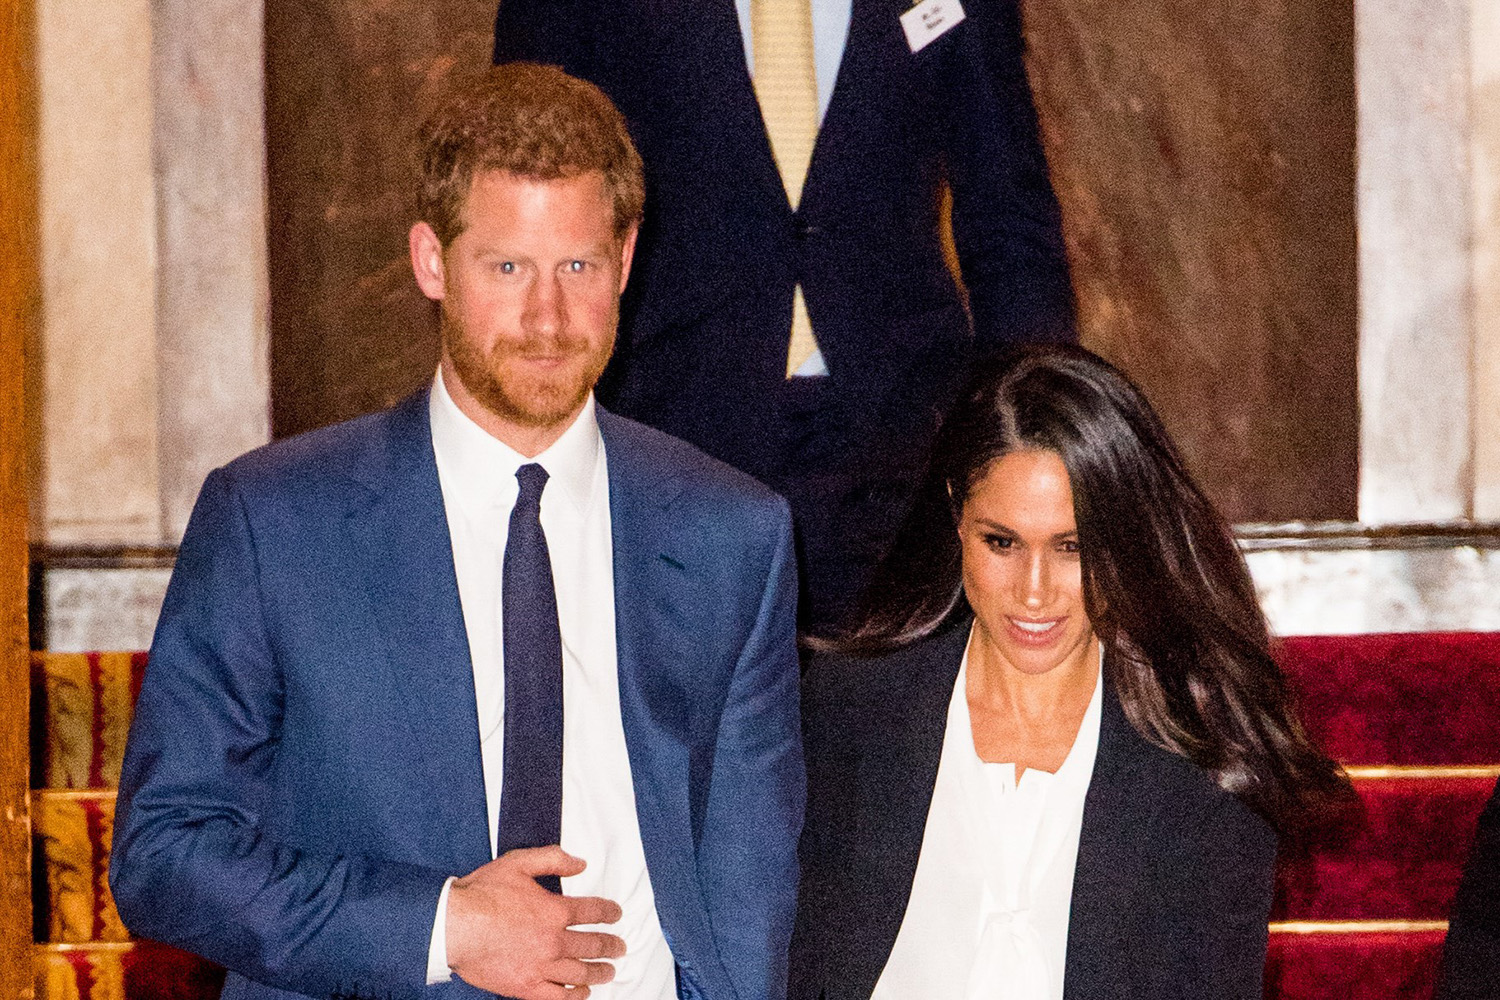 Harry and Meghan's first role after quitting the royal family 'confirmed'